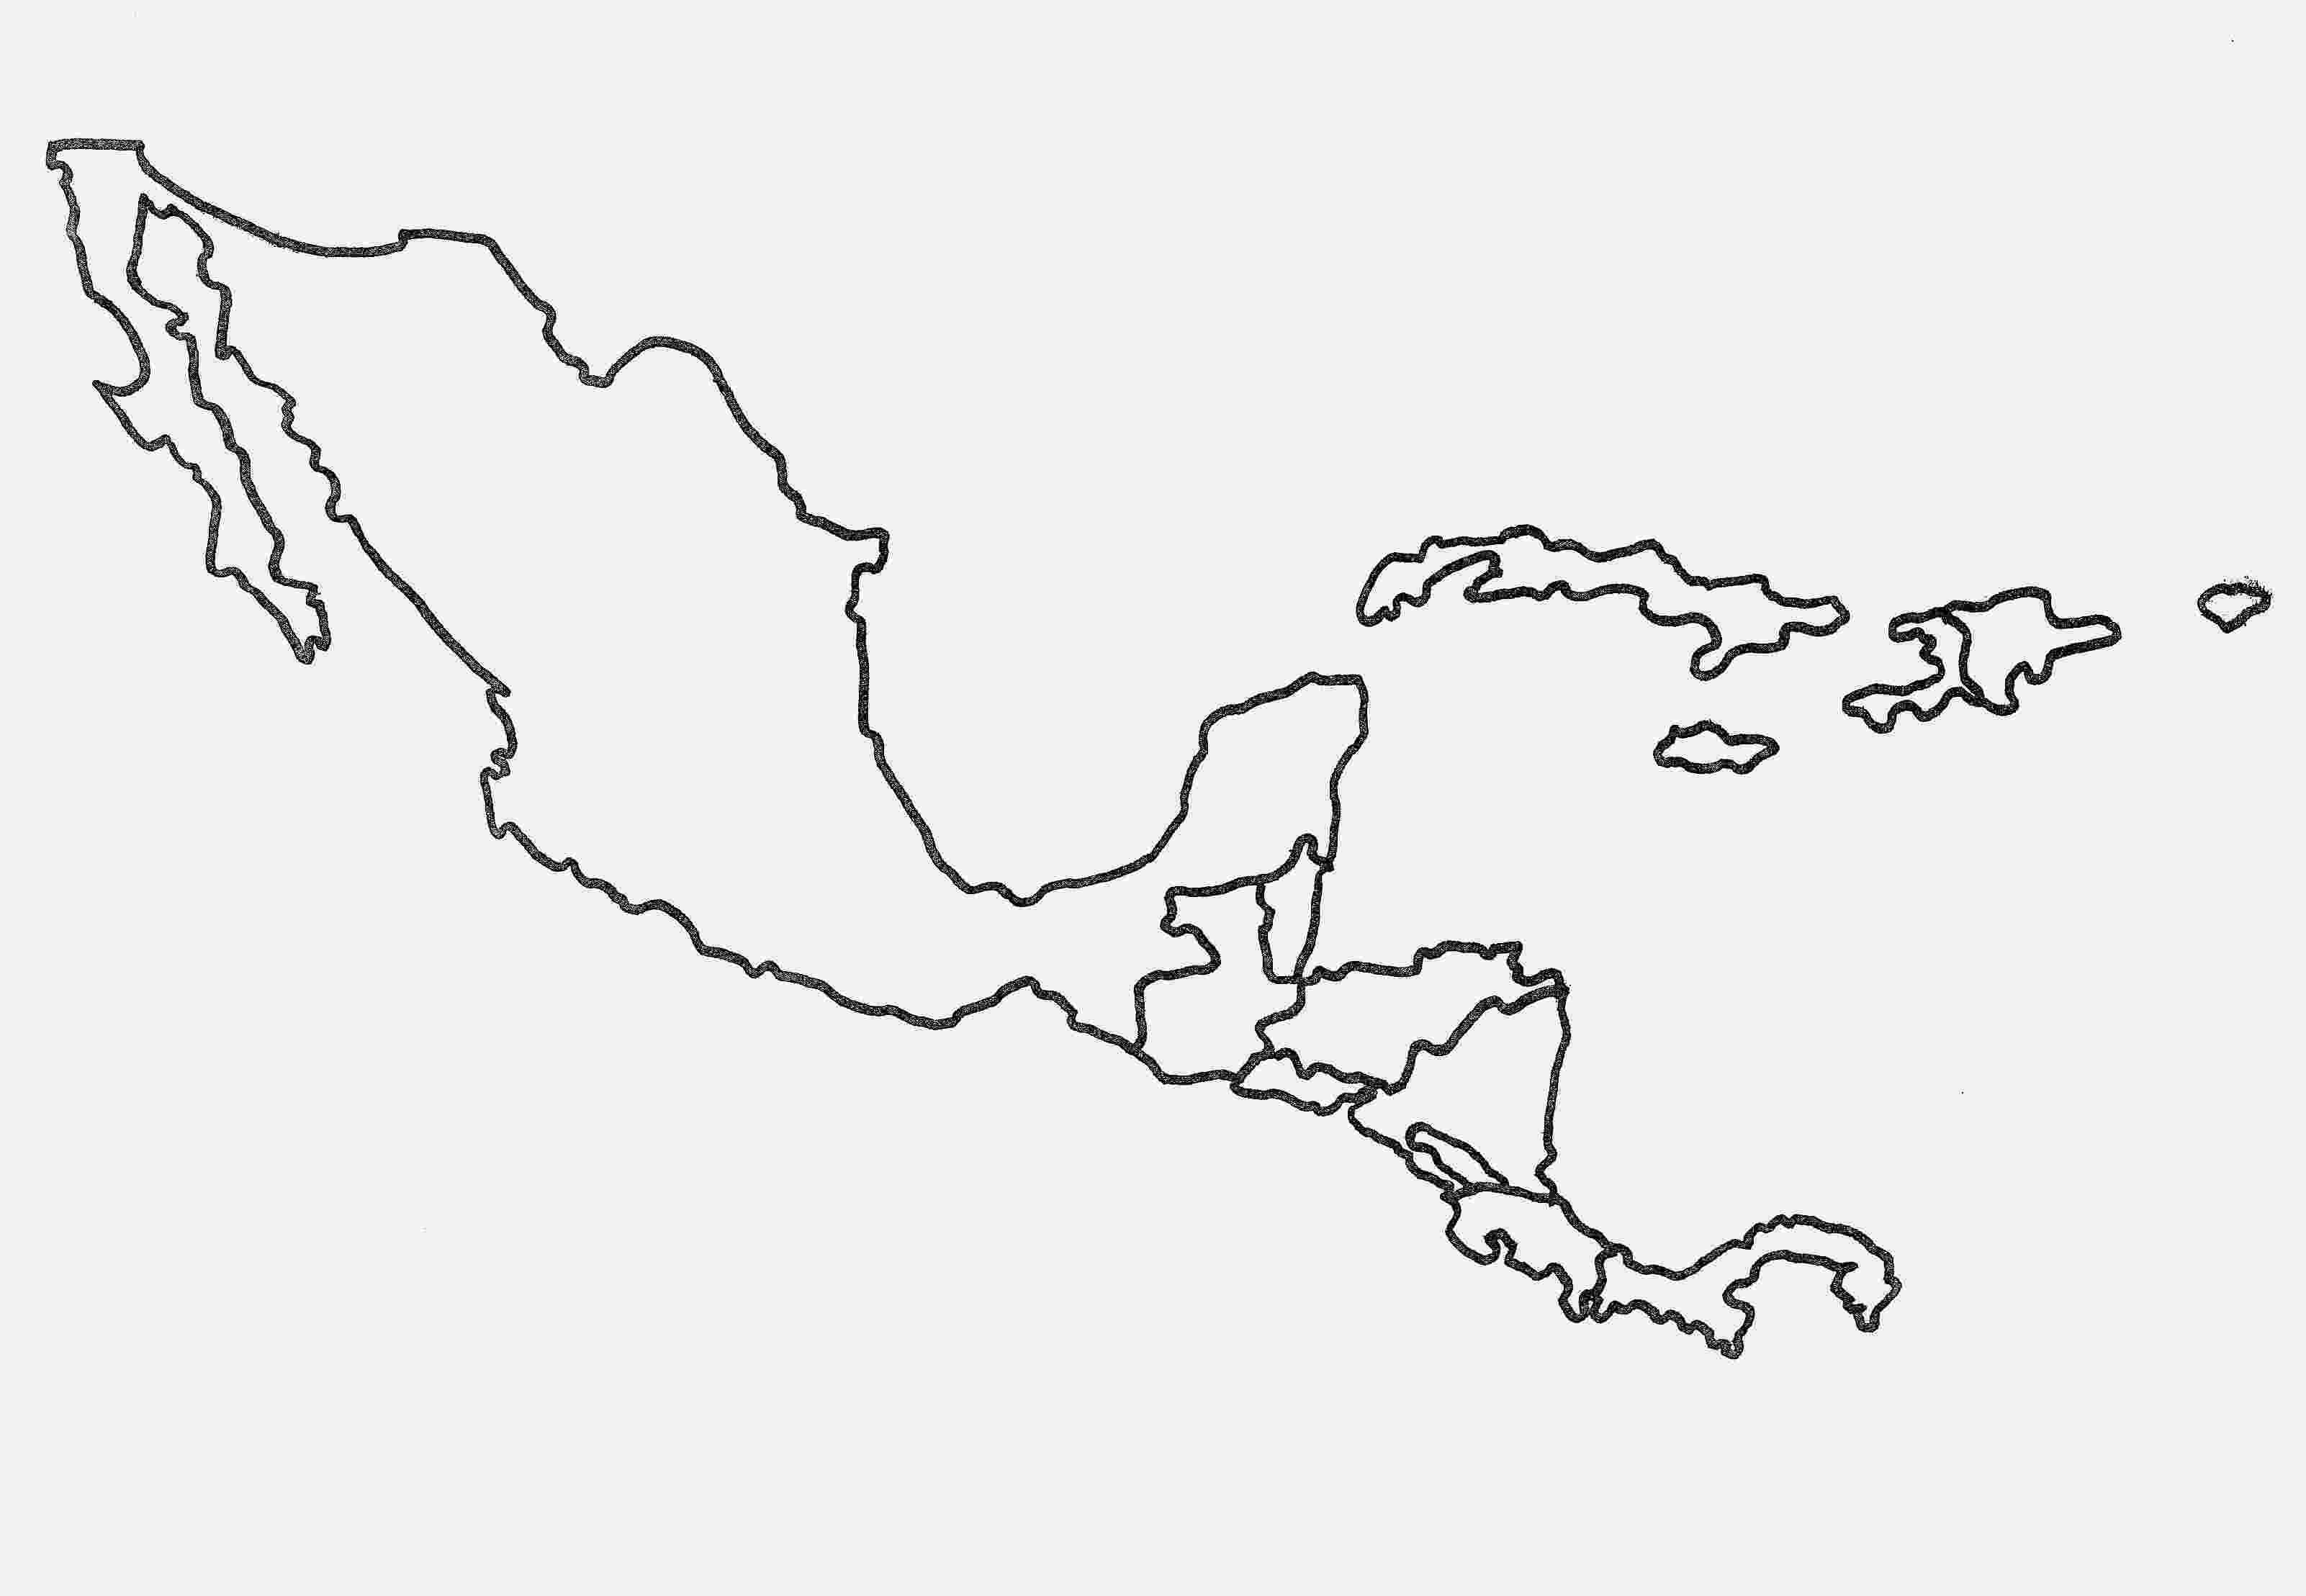 blank map of central america blank map of central and south america printable and of central blank map america